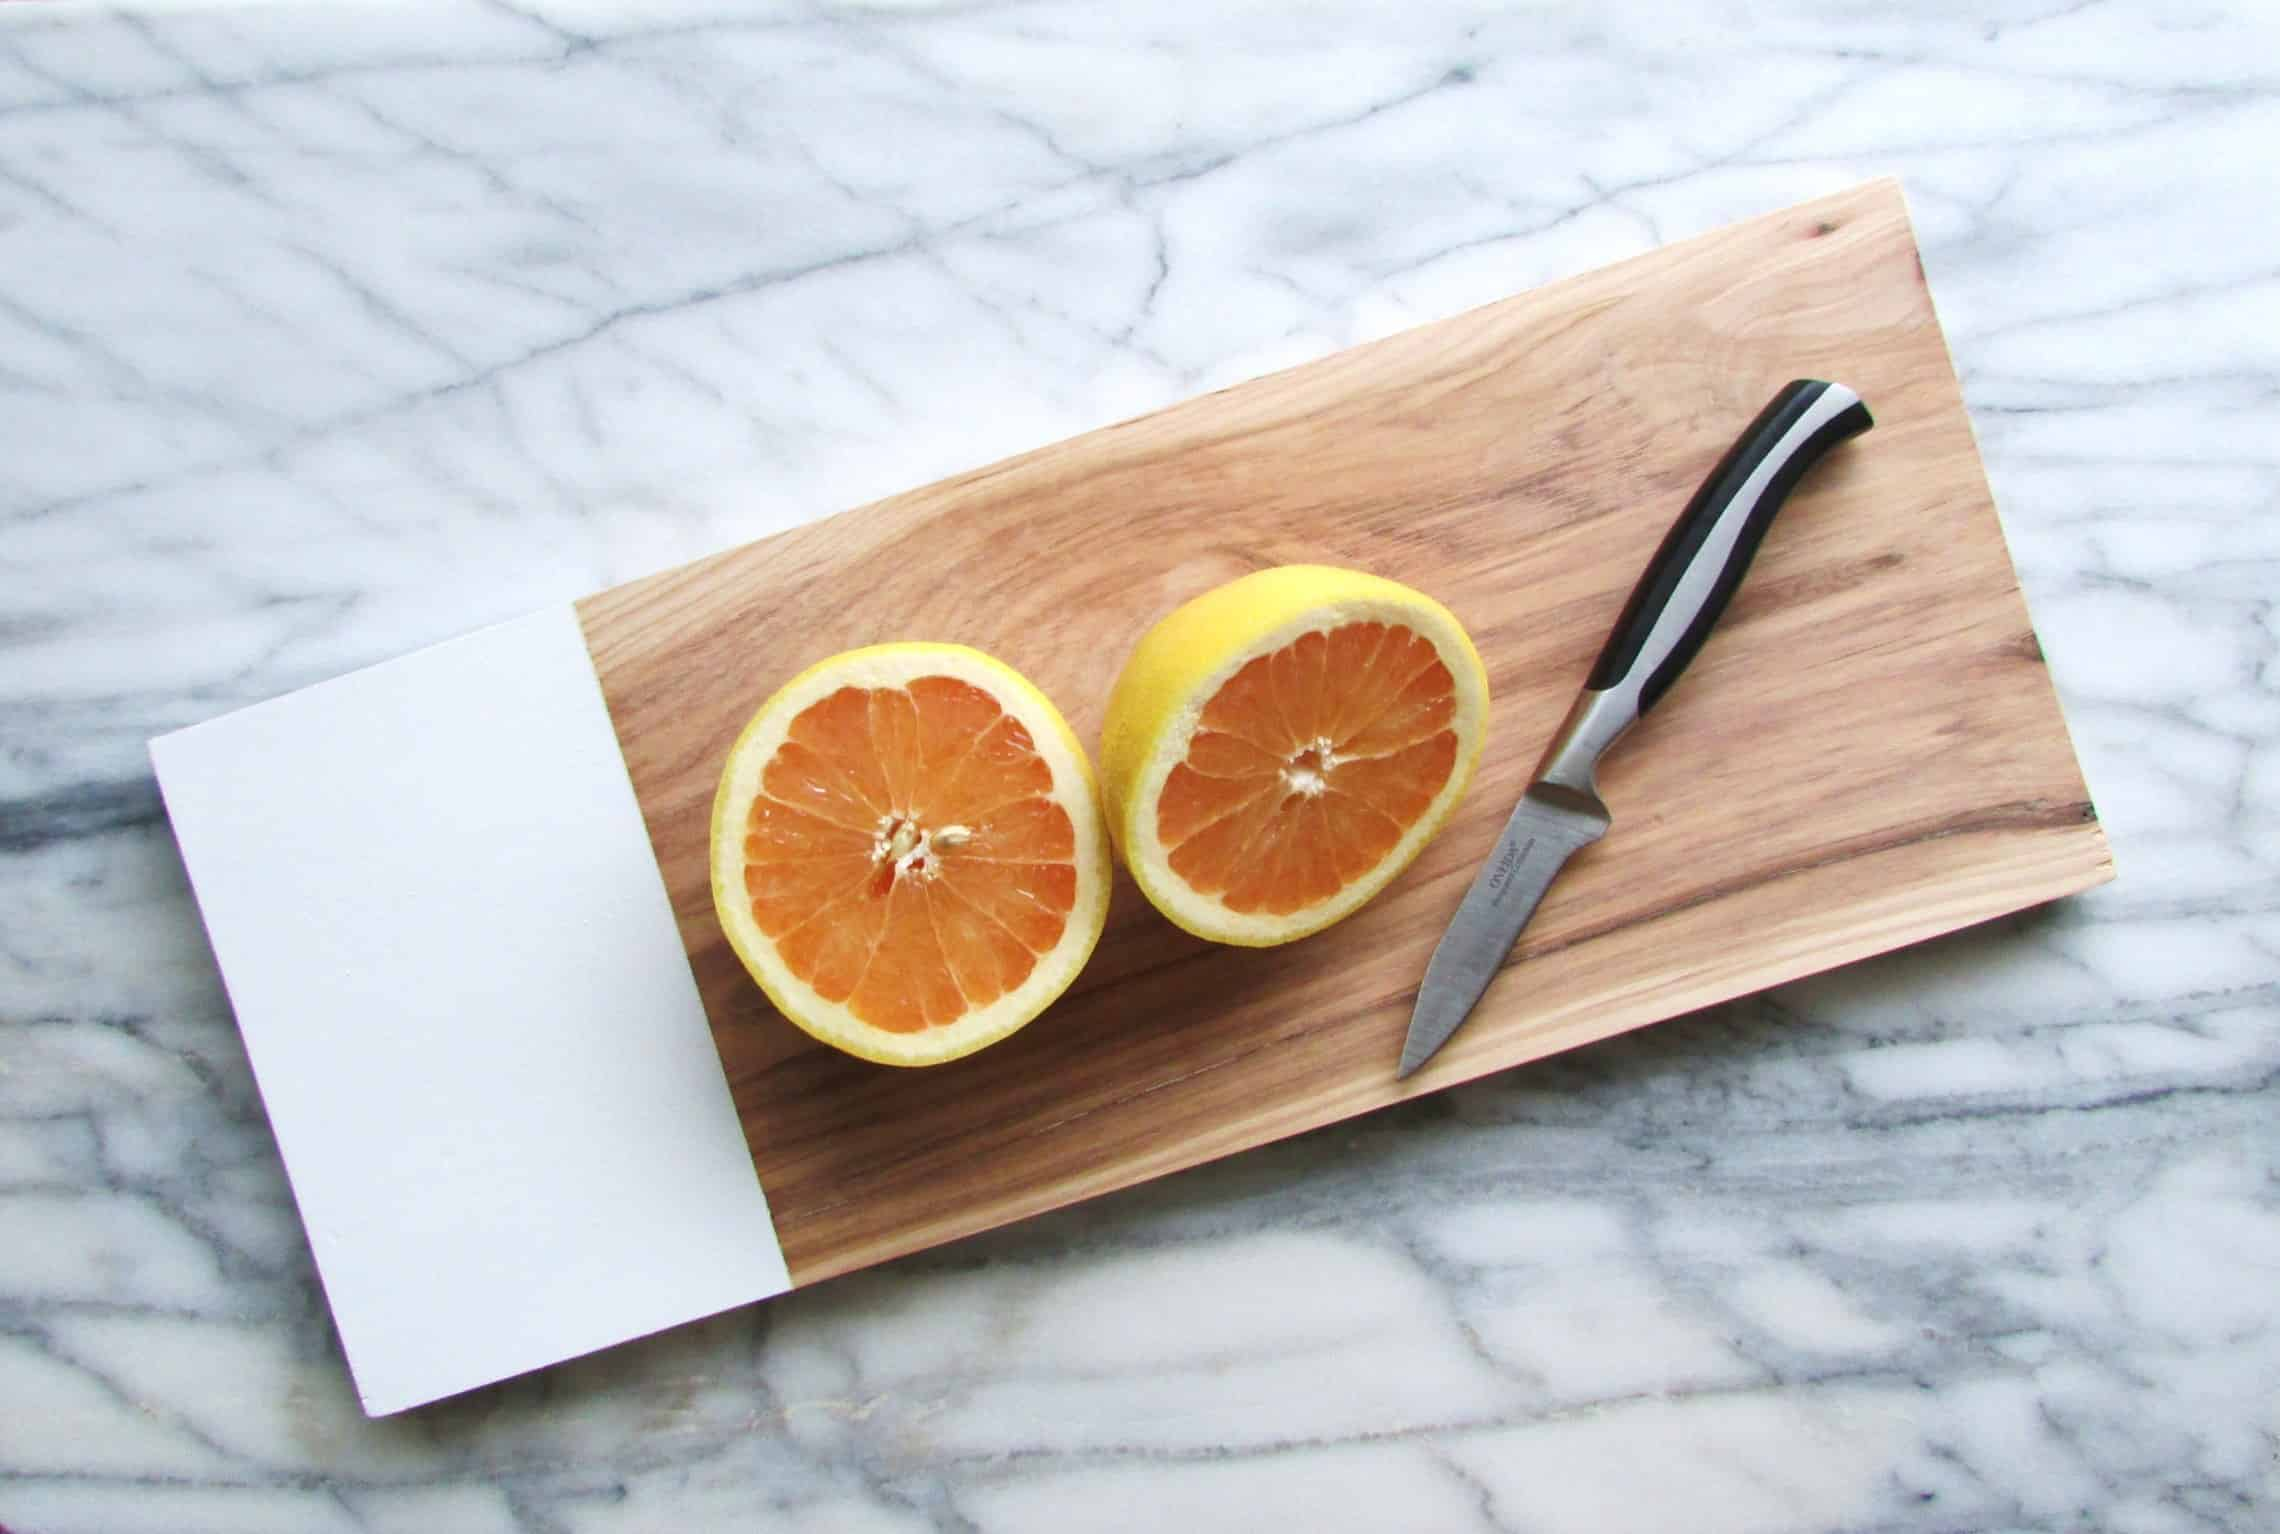 DIY cutting board with white painted end